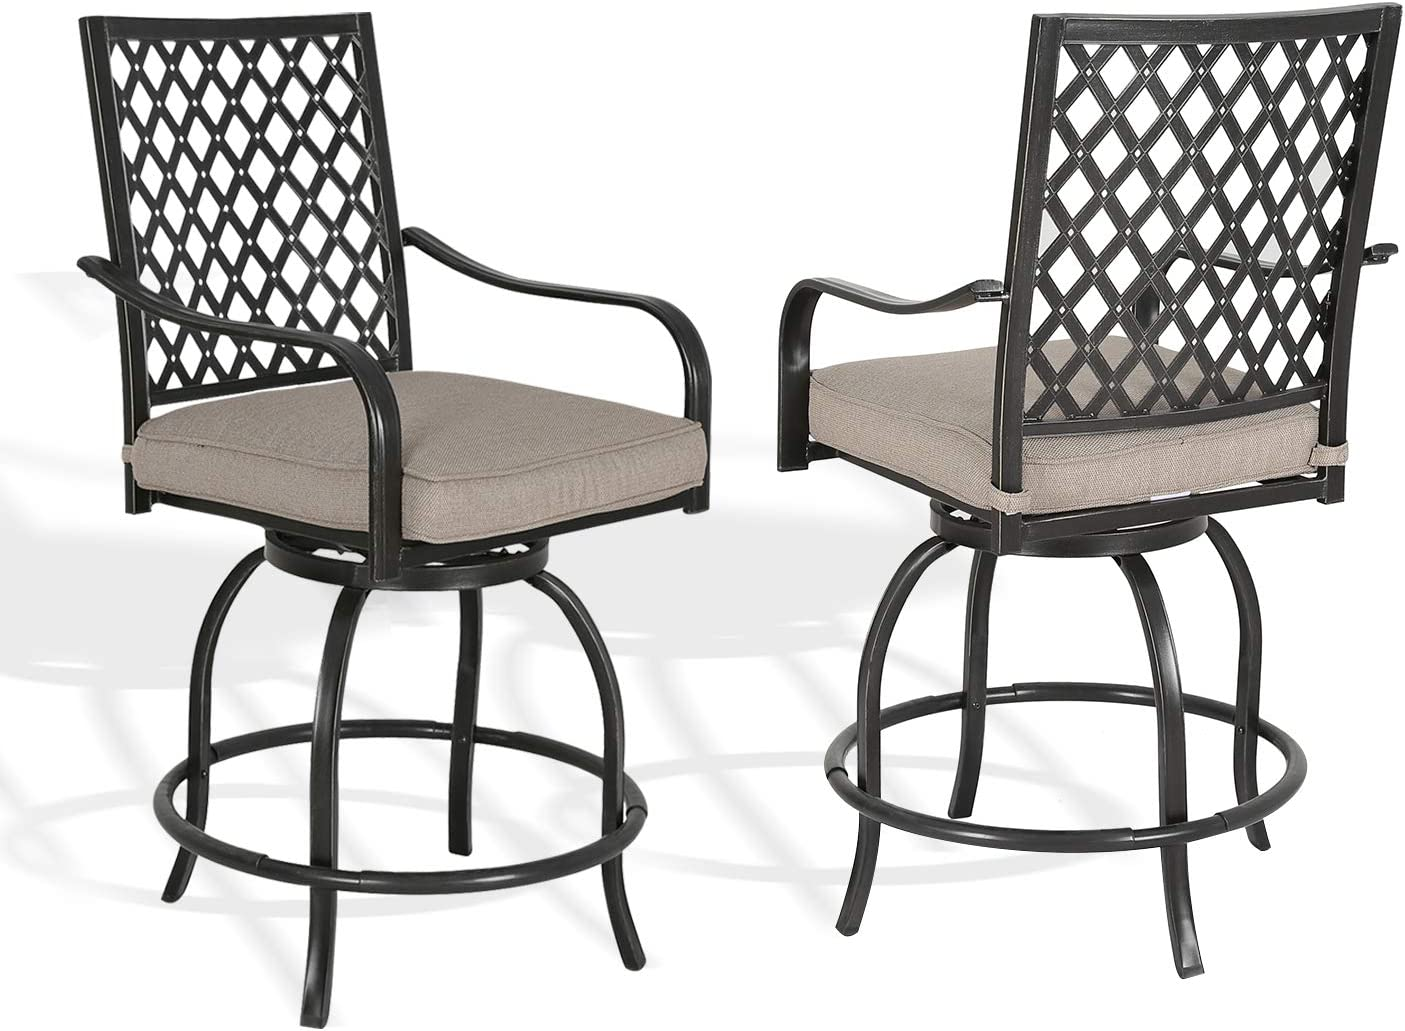 Patio Tree Outdoor Swivel Bar Beige Chairs Stools Free shipping Cus Max 63% OFF with